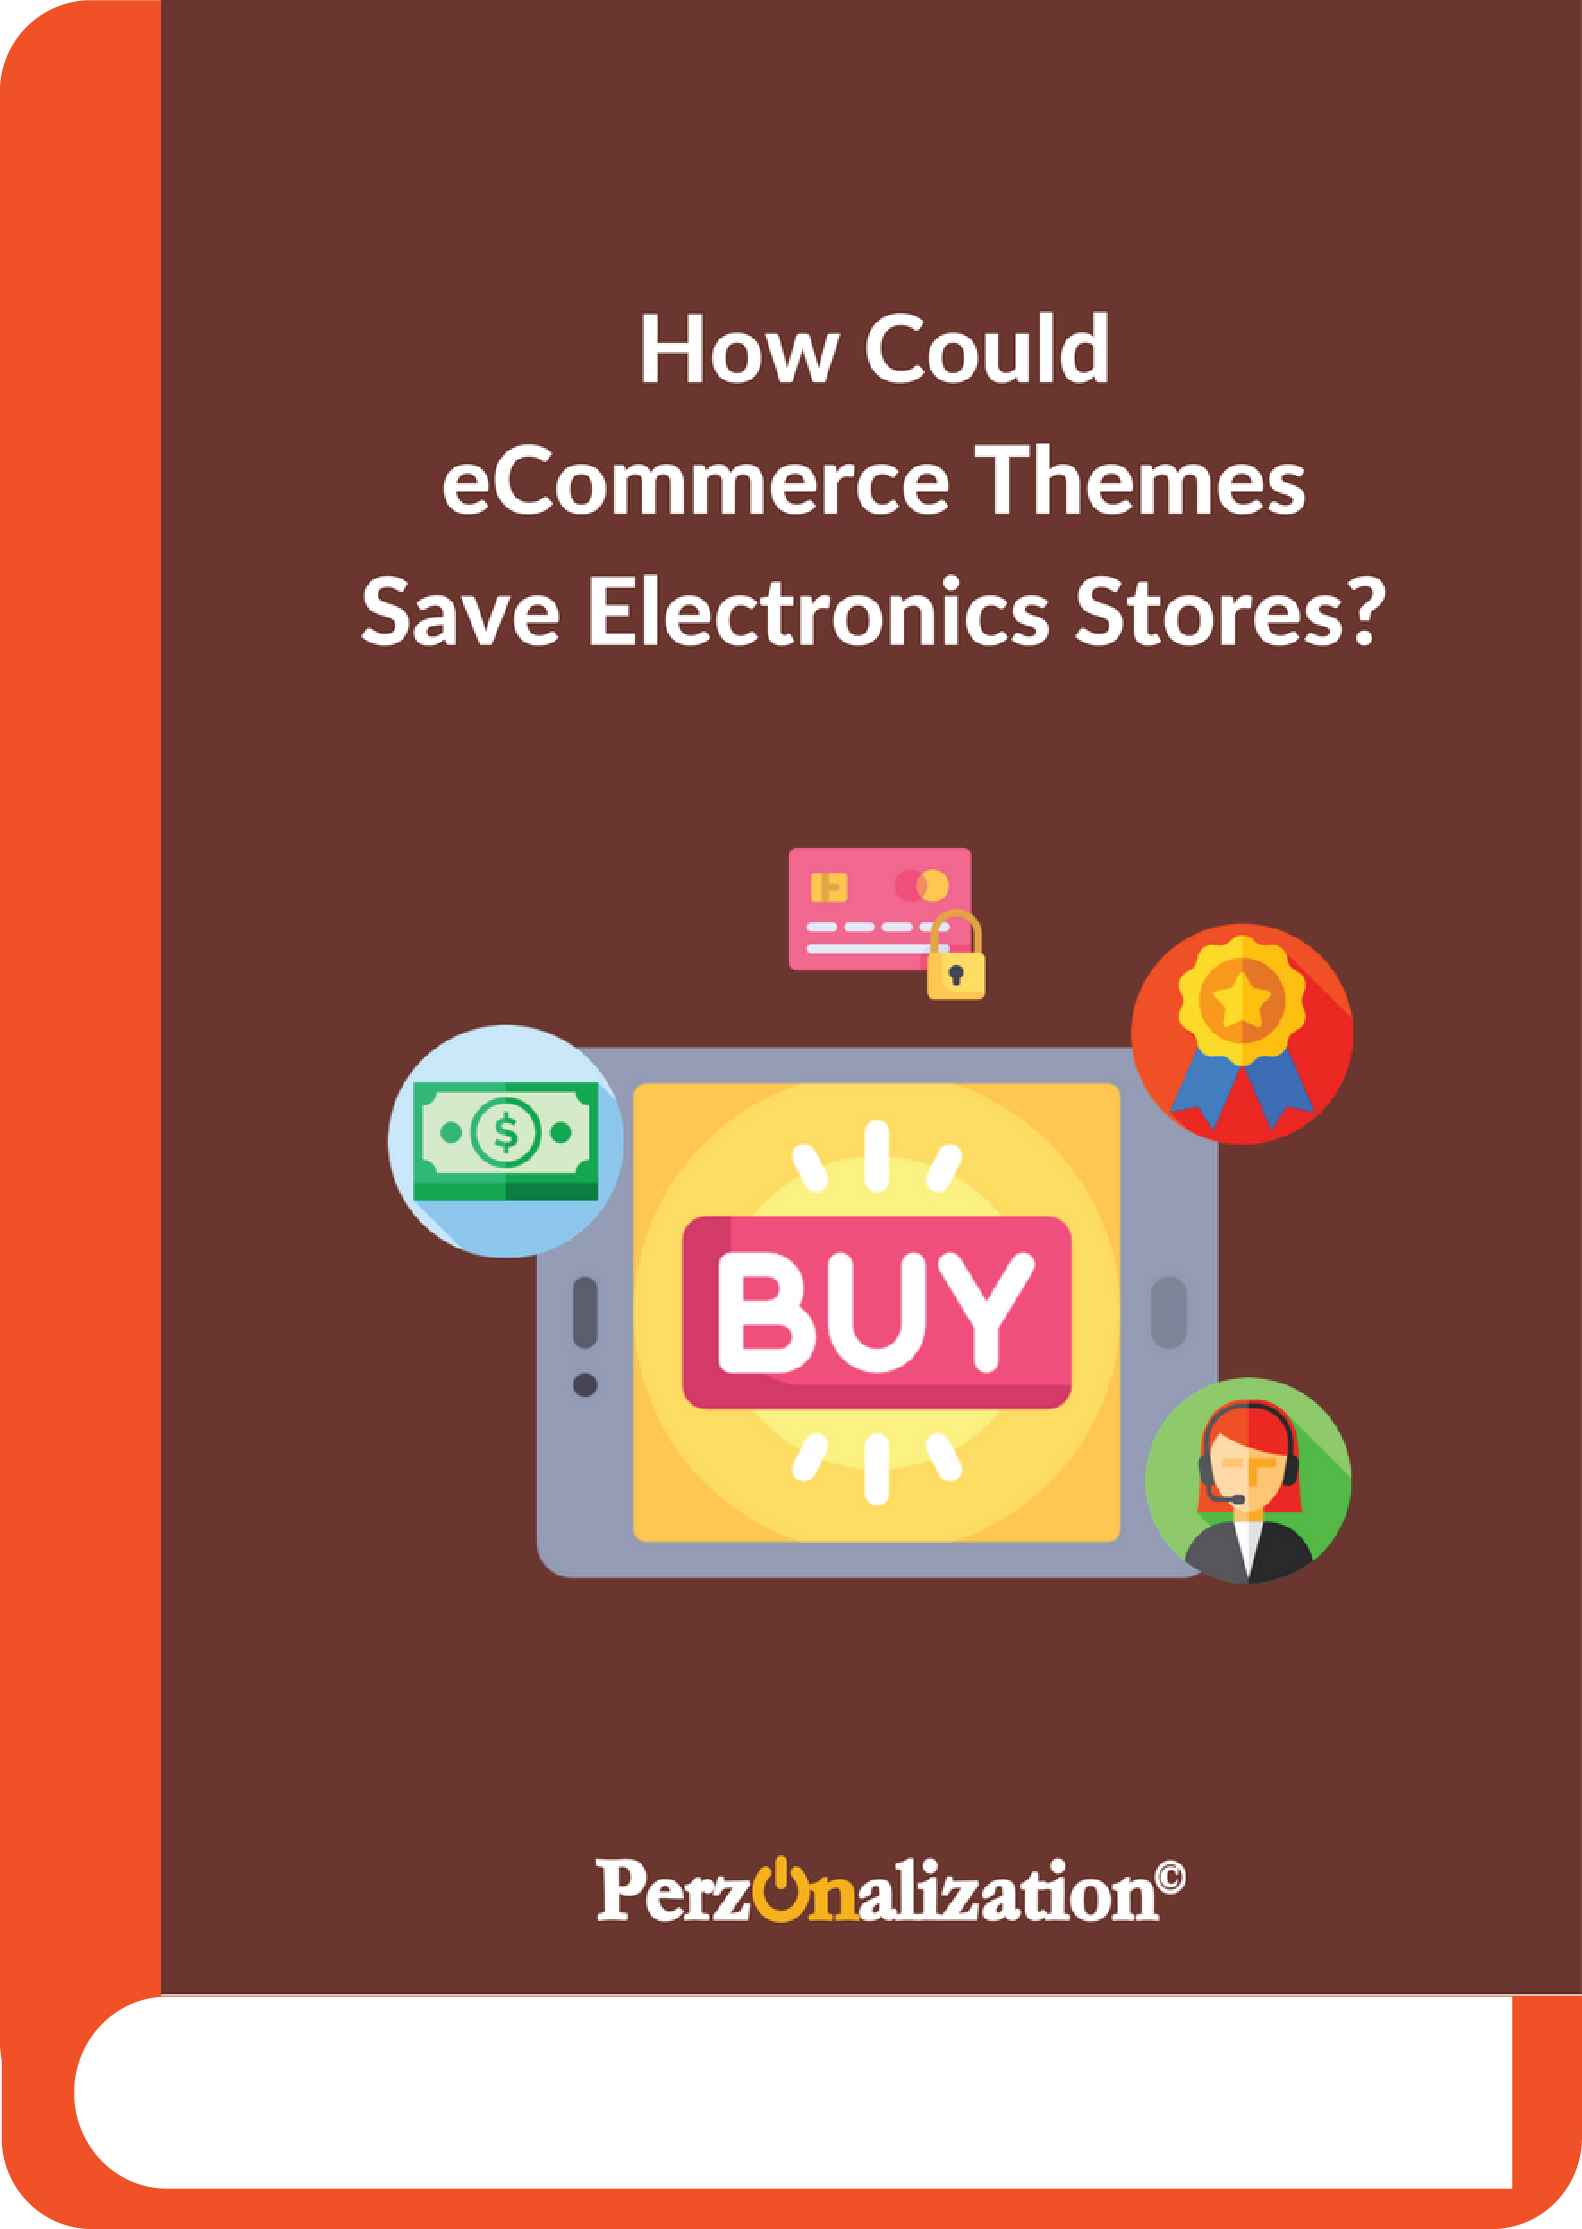 If you're operating an online electronics store, then this post is for you! We take a look at the 10 best WordPress and WooCommerce themes that could save your business!